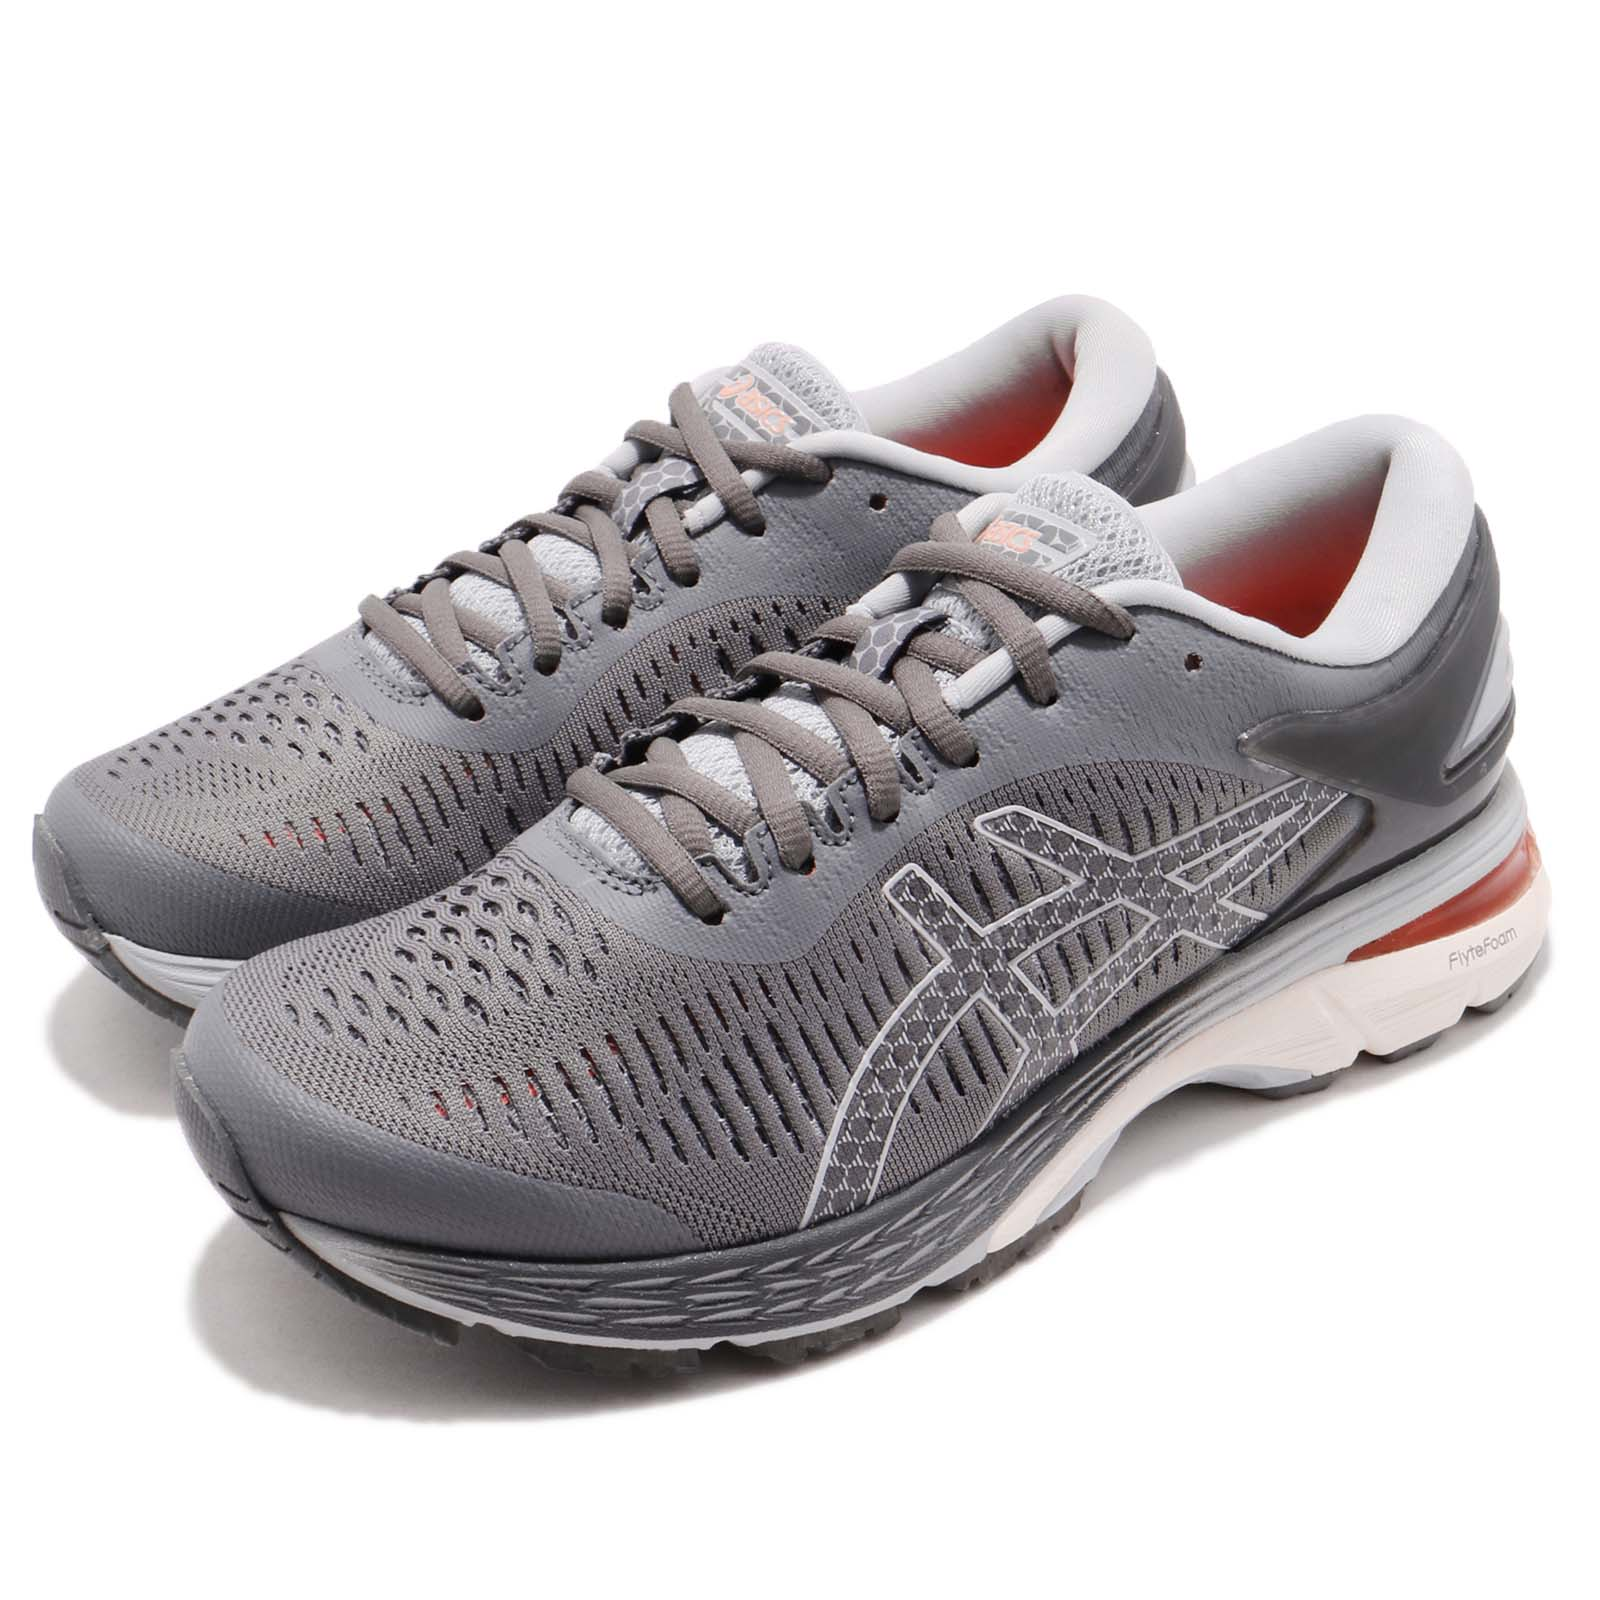 0c28b19a28d56 Details about Asics Gel-Kayano 25 Carbon Grey White Women Running Shoes  Sneakers 1012A026-020